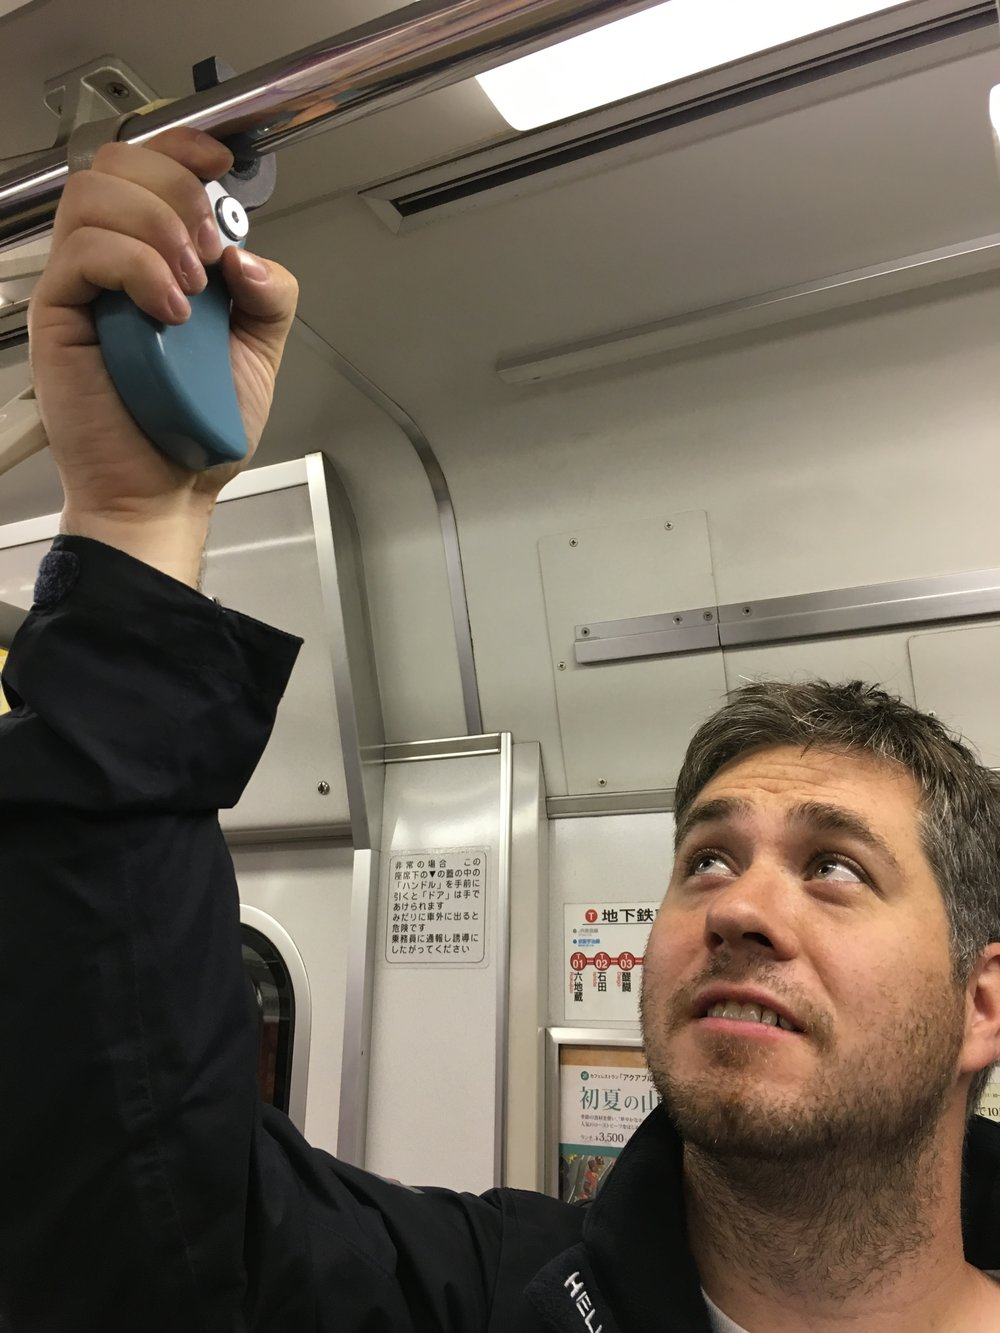 Working Prototype in Tokyo subway system